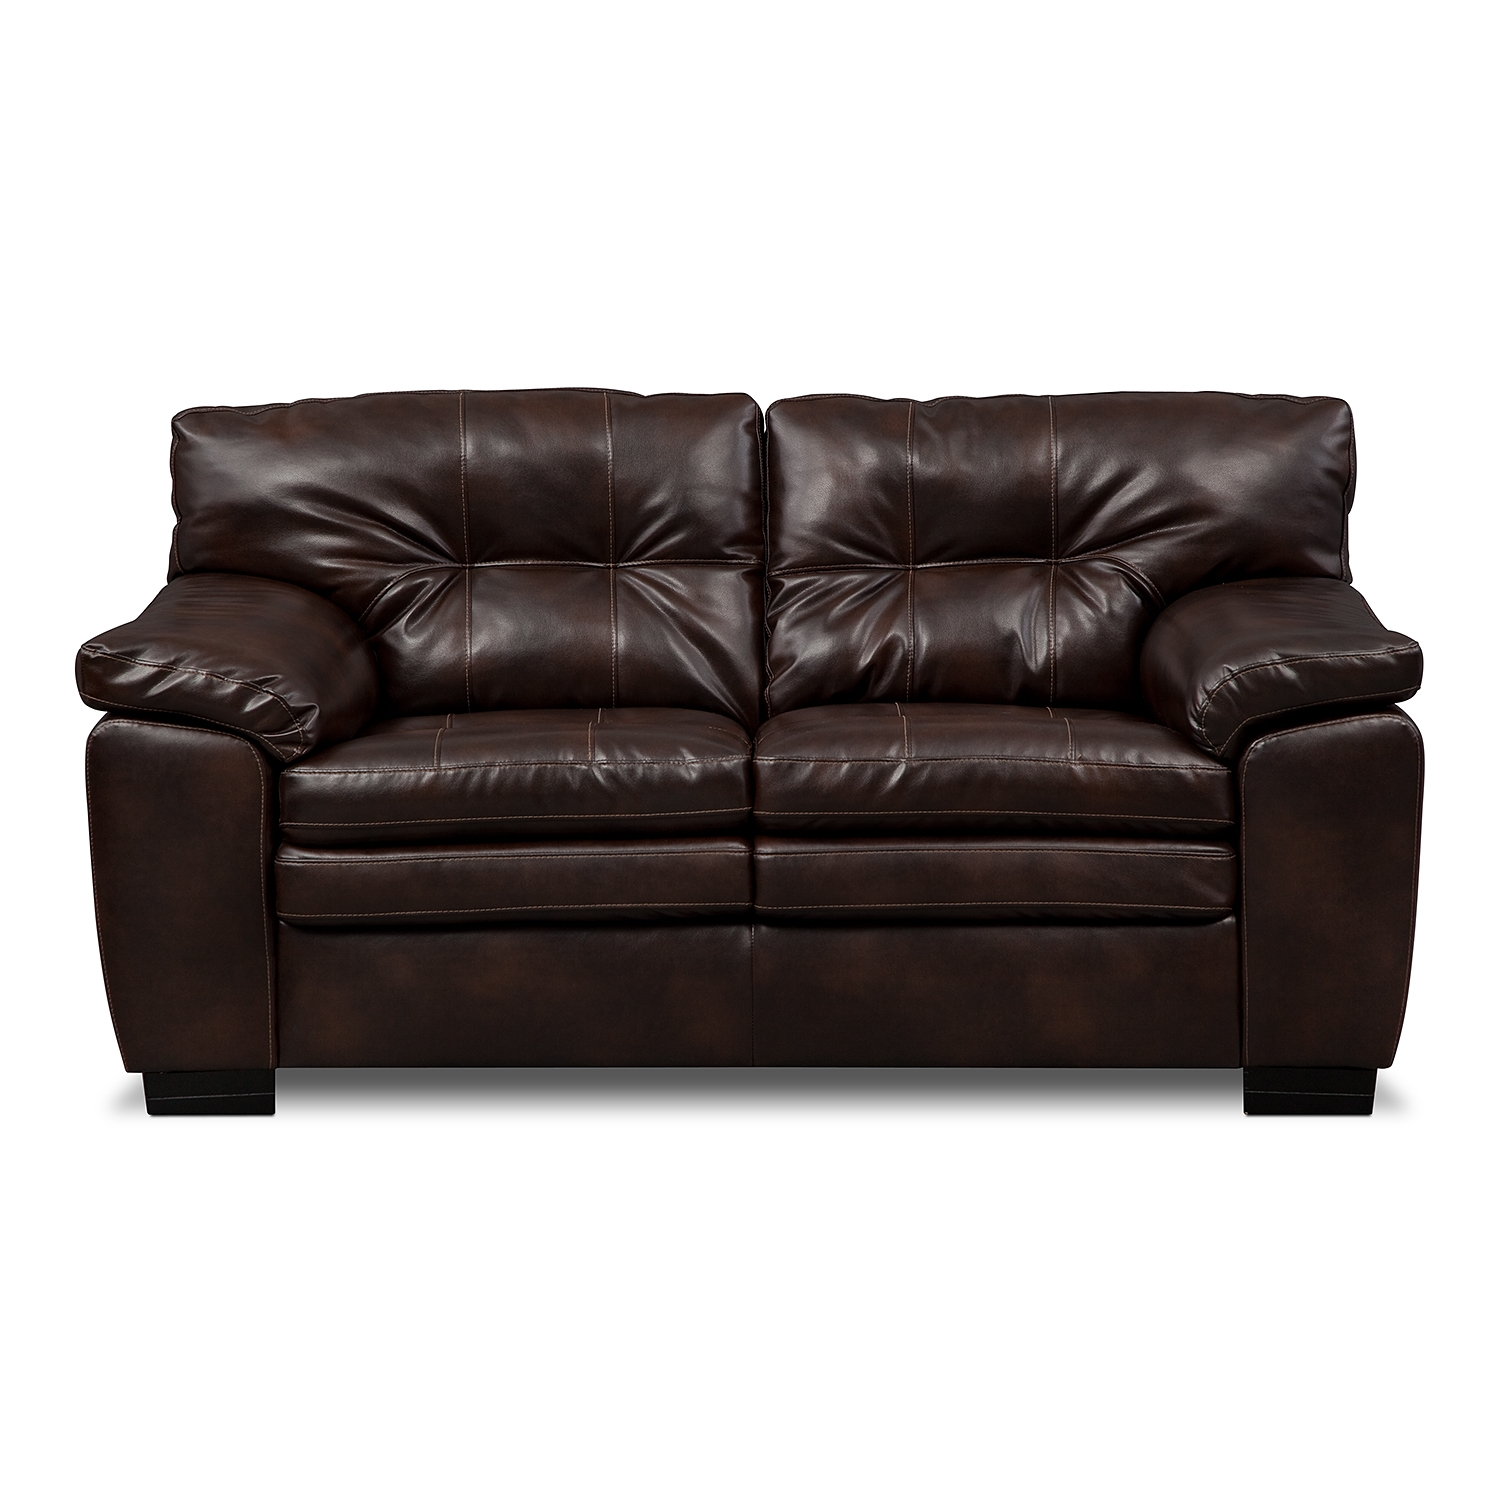 Convertible loveseat sofa bed with chaise couch sofa for Leather sofa and loveseat set